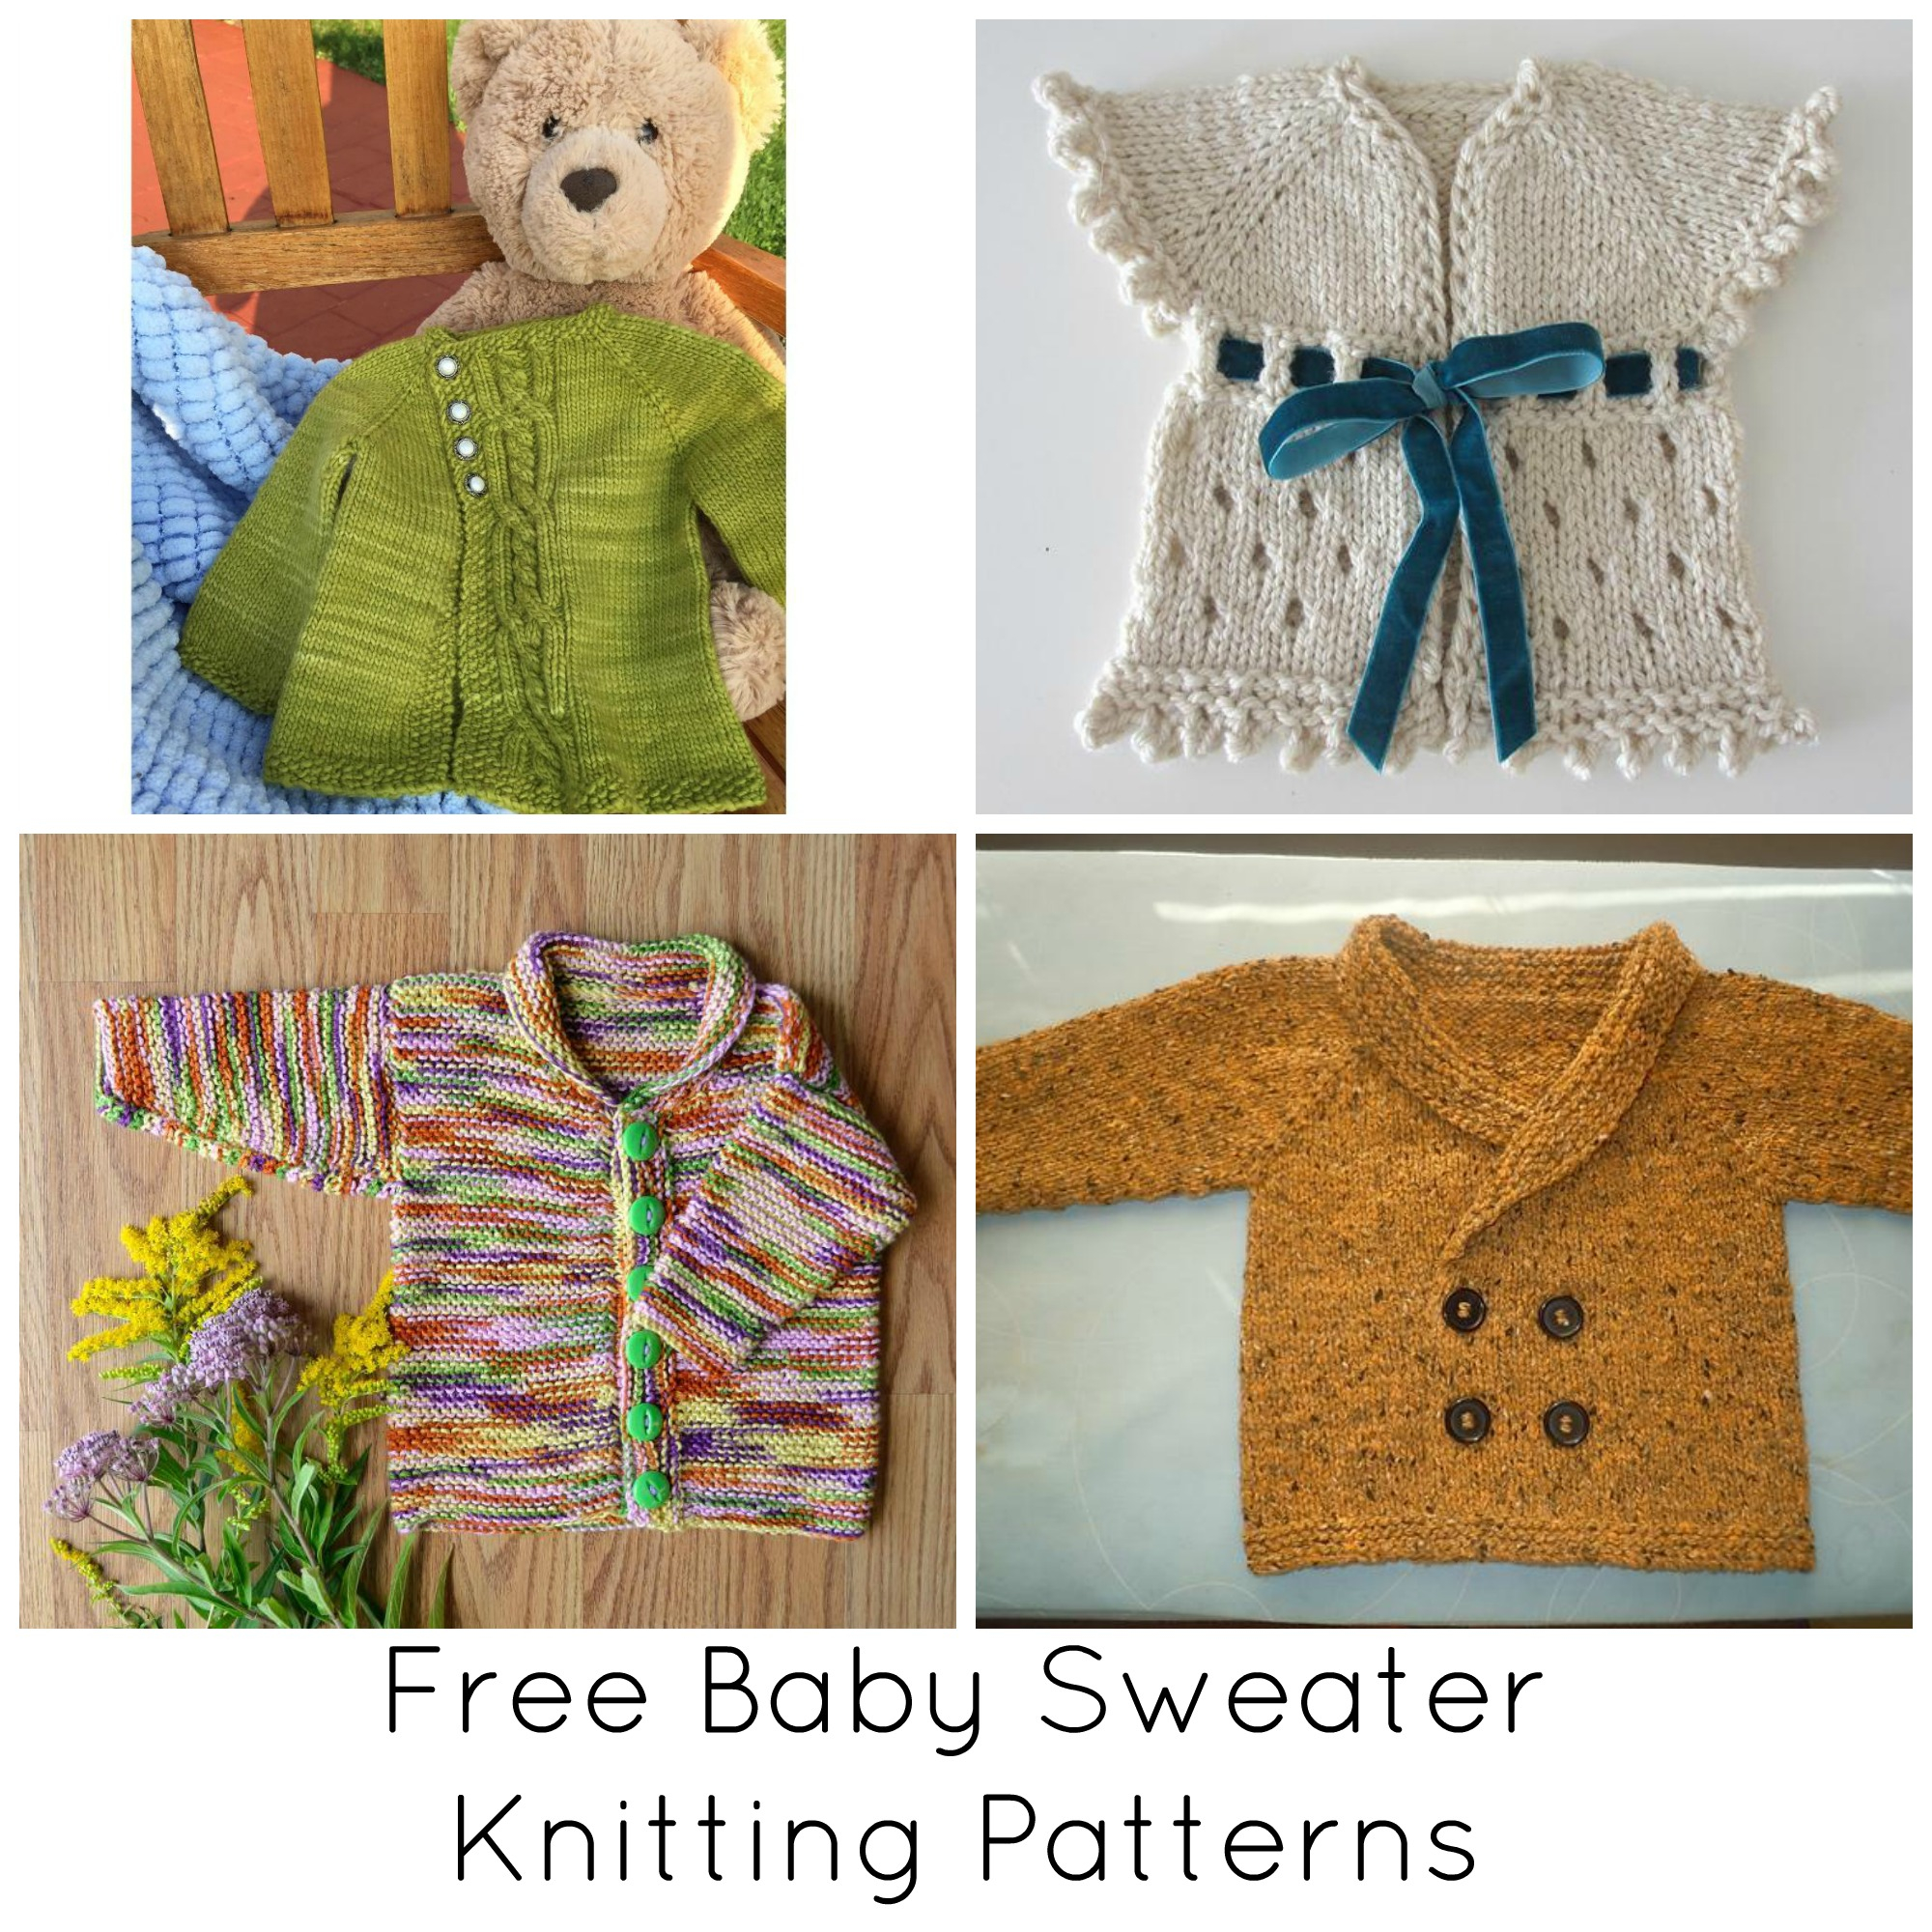 Free Knitting Patterns For Sweater Coats Our Favorite Free Ba Sweater Knitting Patterns